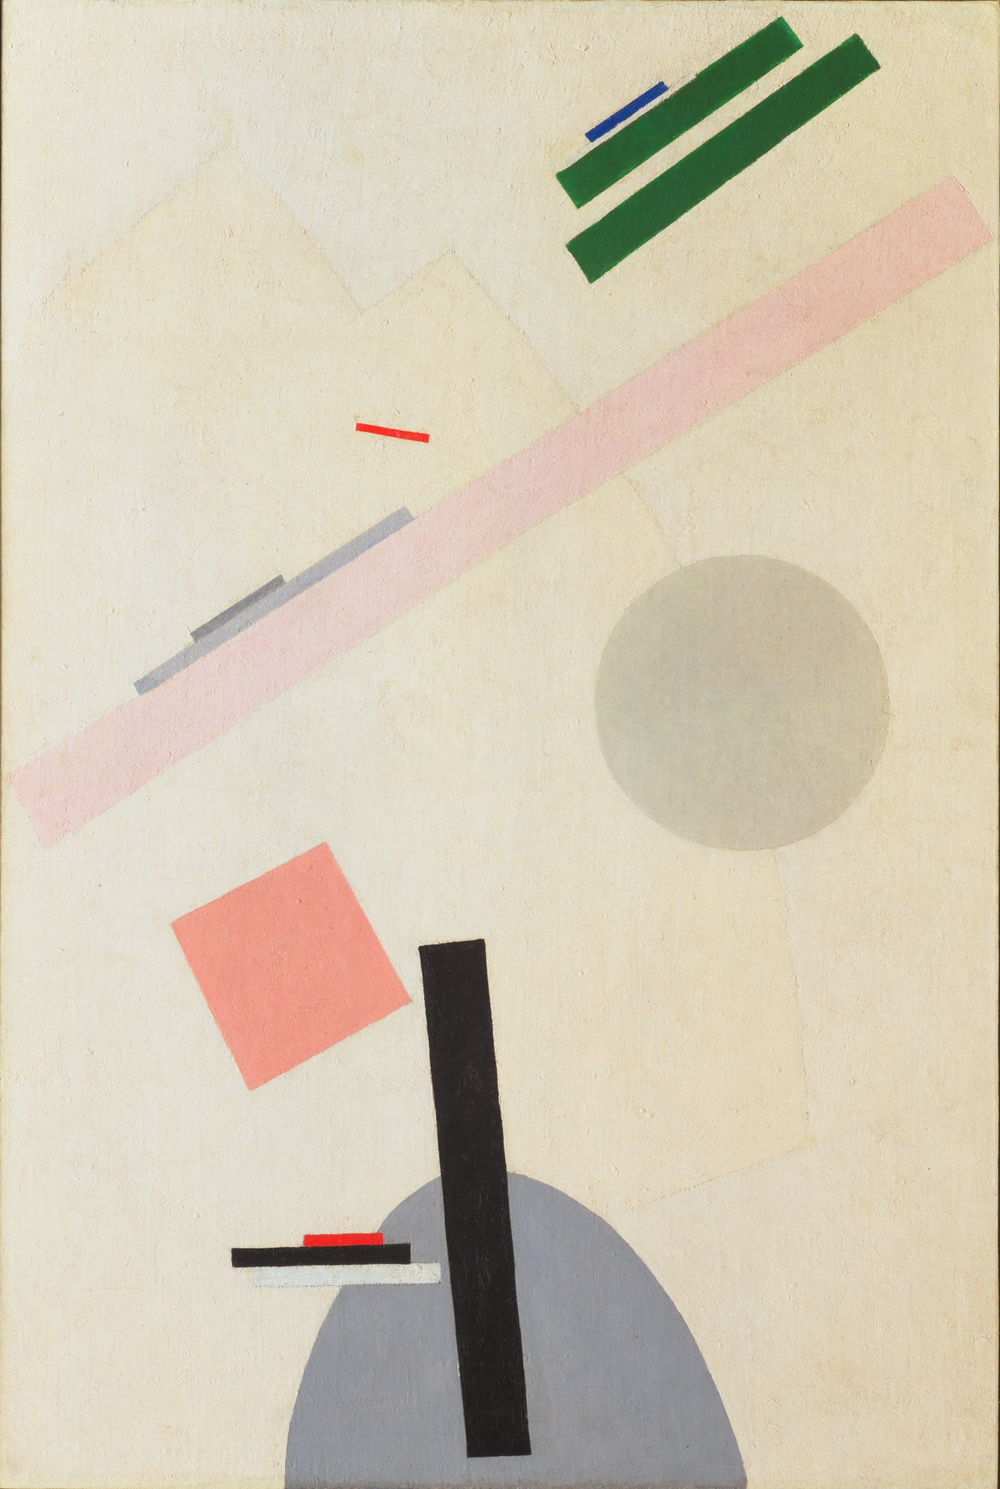 "moma :    Kazimir Malevich , born today in 1878, was one of the pioneers of abstract art. In December 1915, Malevich unveiled a radically new mode of abstract painting that abandoned all reference to the outside world in favor of colored geometric shapes floating against white backgrounds. Because his new style claimed supremacy over the forms of nature, he called it ""Suprematism.""   [Kazimir Malevich.   Suprematist Painting  . 1916-17]"